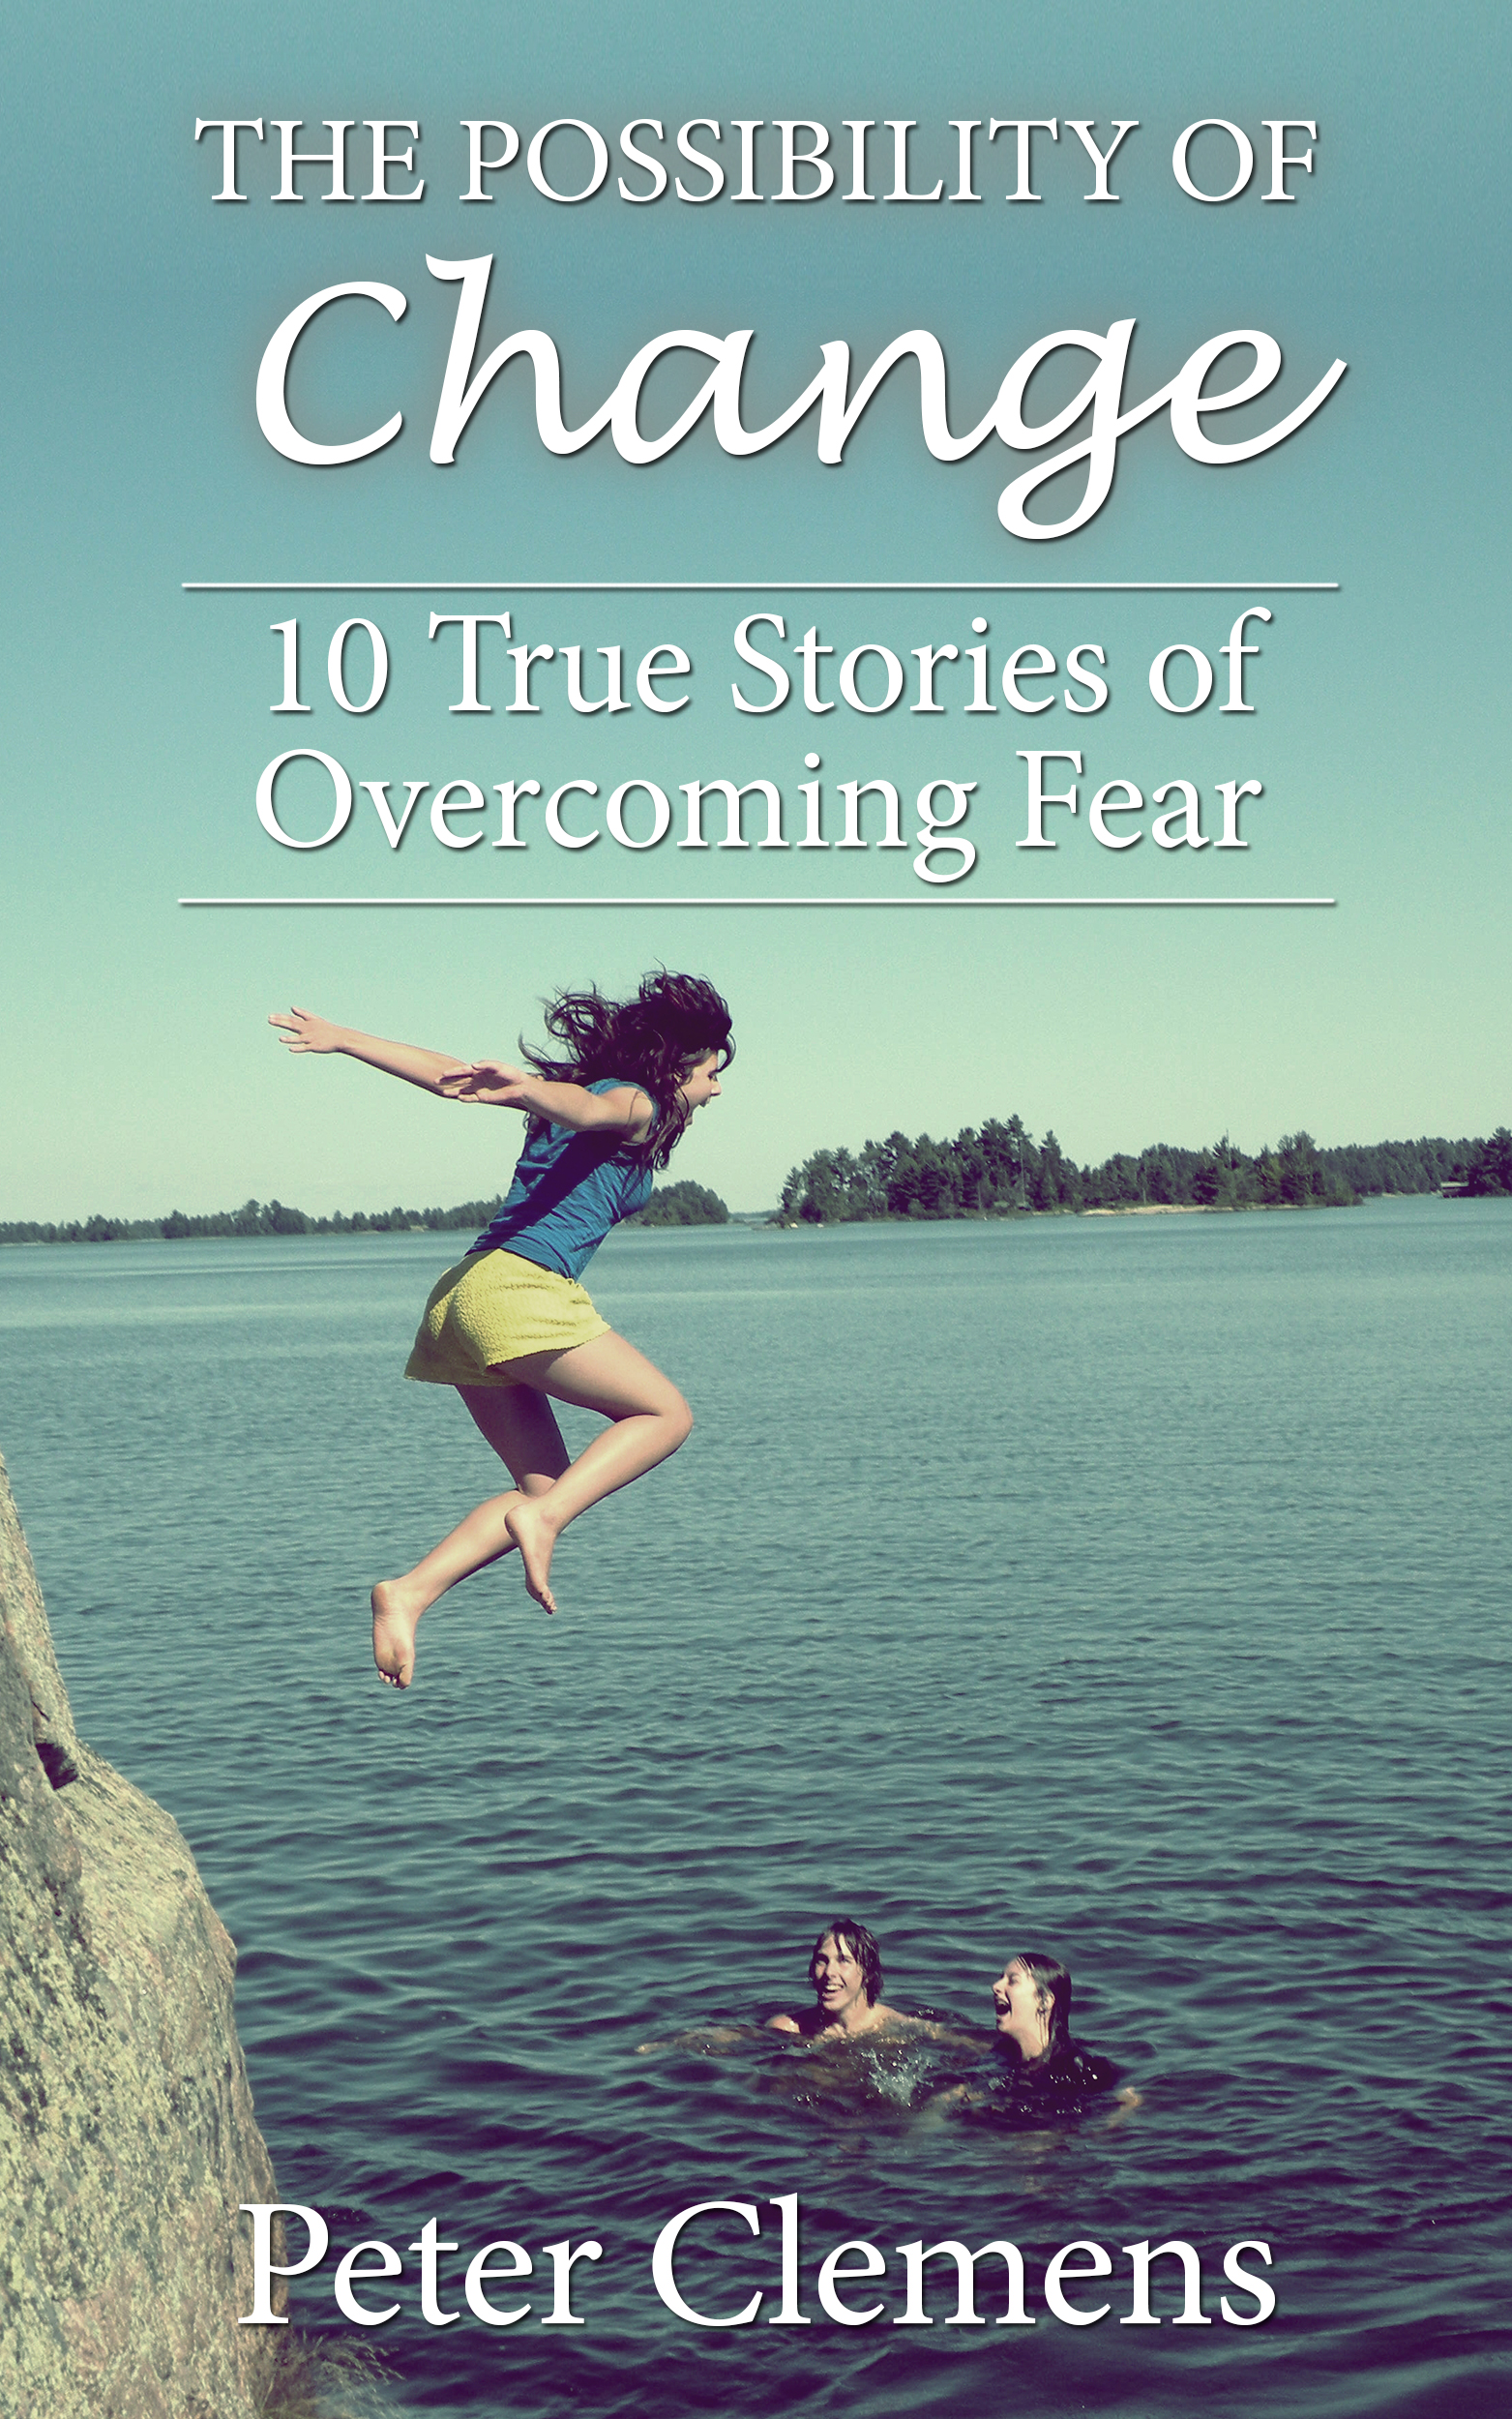 10 True Stories of Overcoming Fear